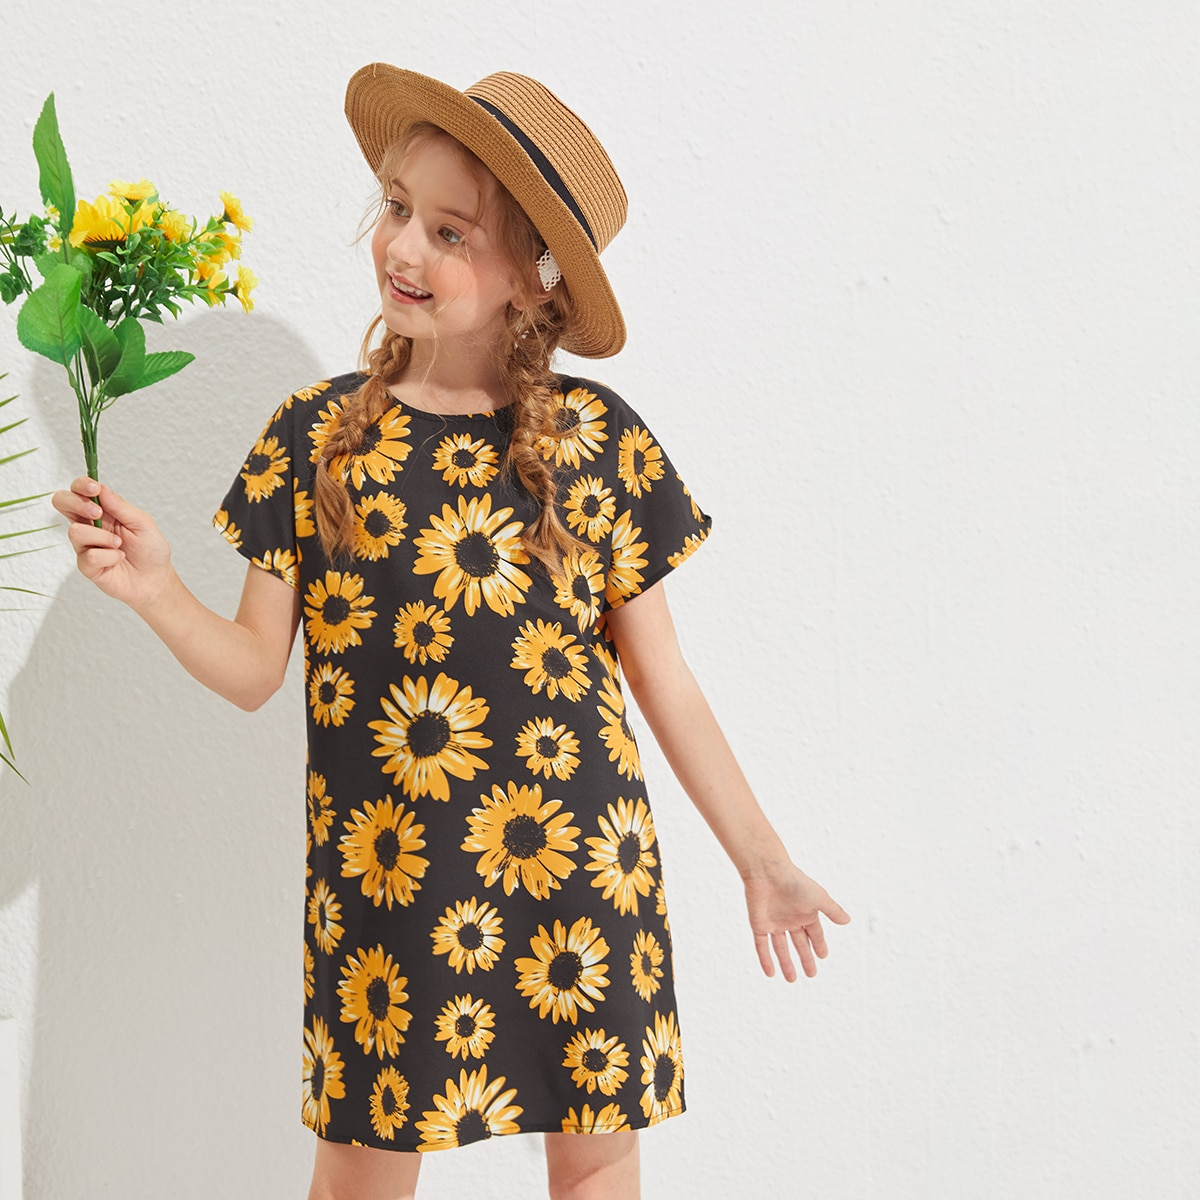 Girls Floral Print Tunic Dress, SHEIN  - buy with discount